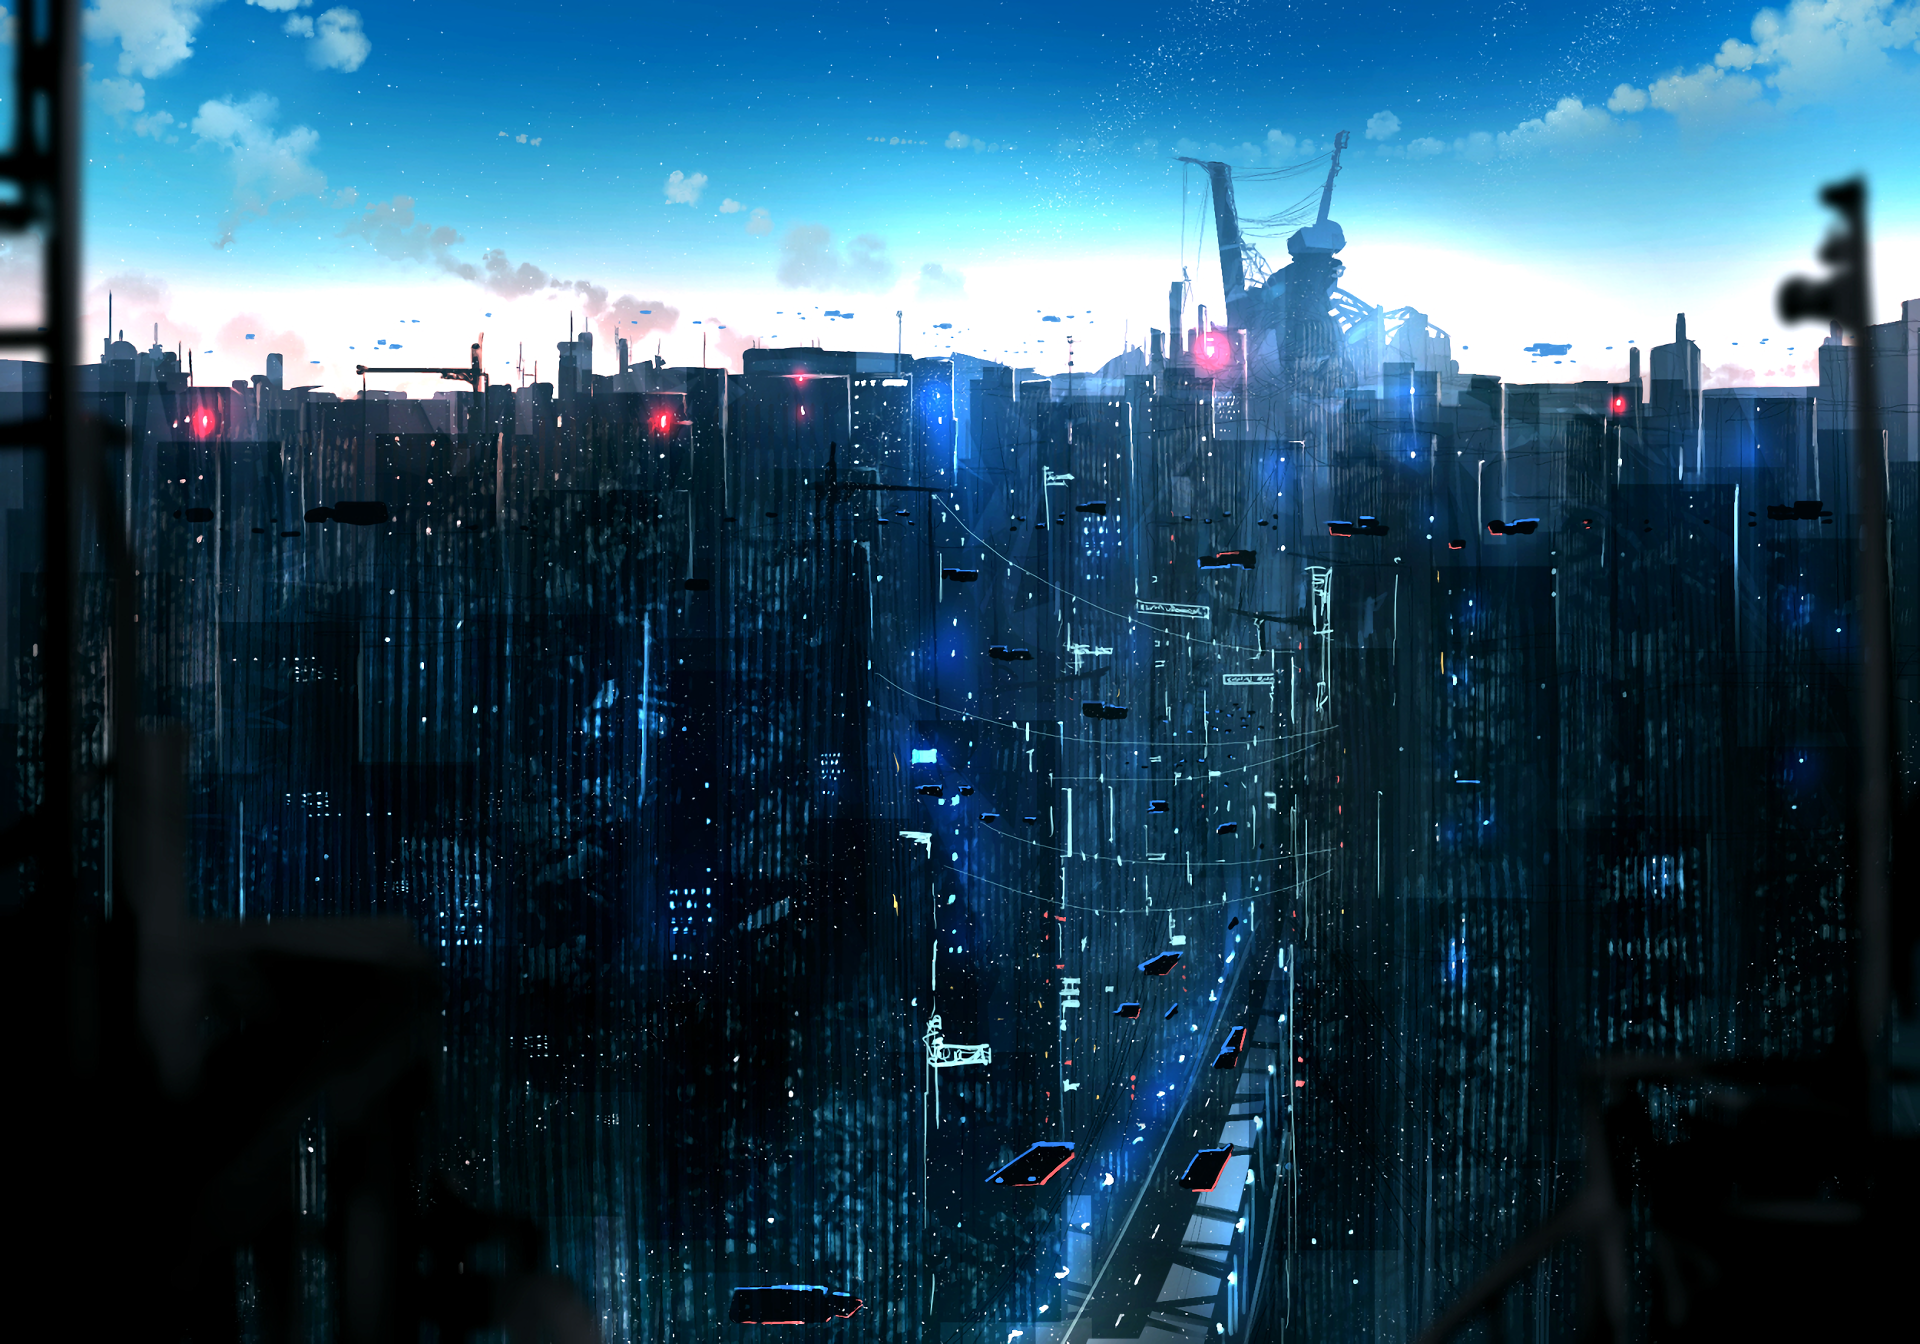 Anime - Original  City Sci Fi Building Wallpaper